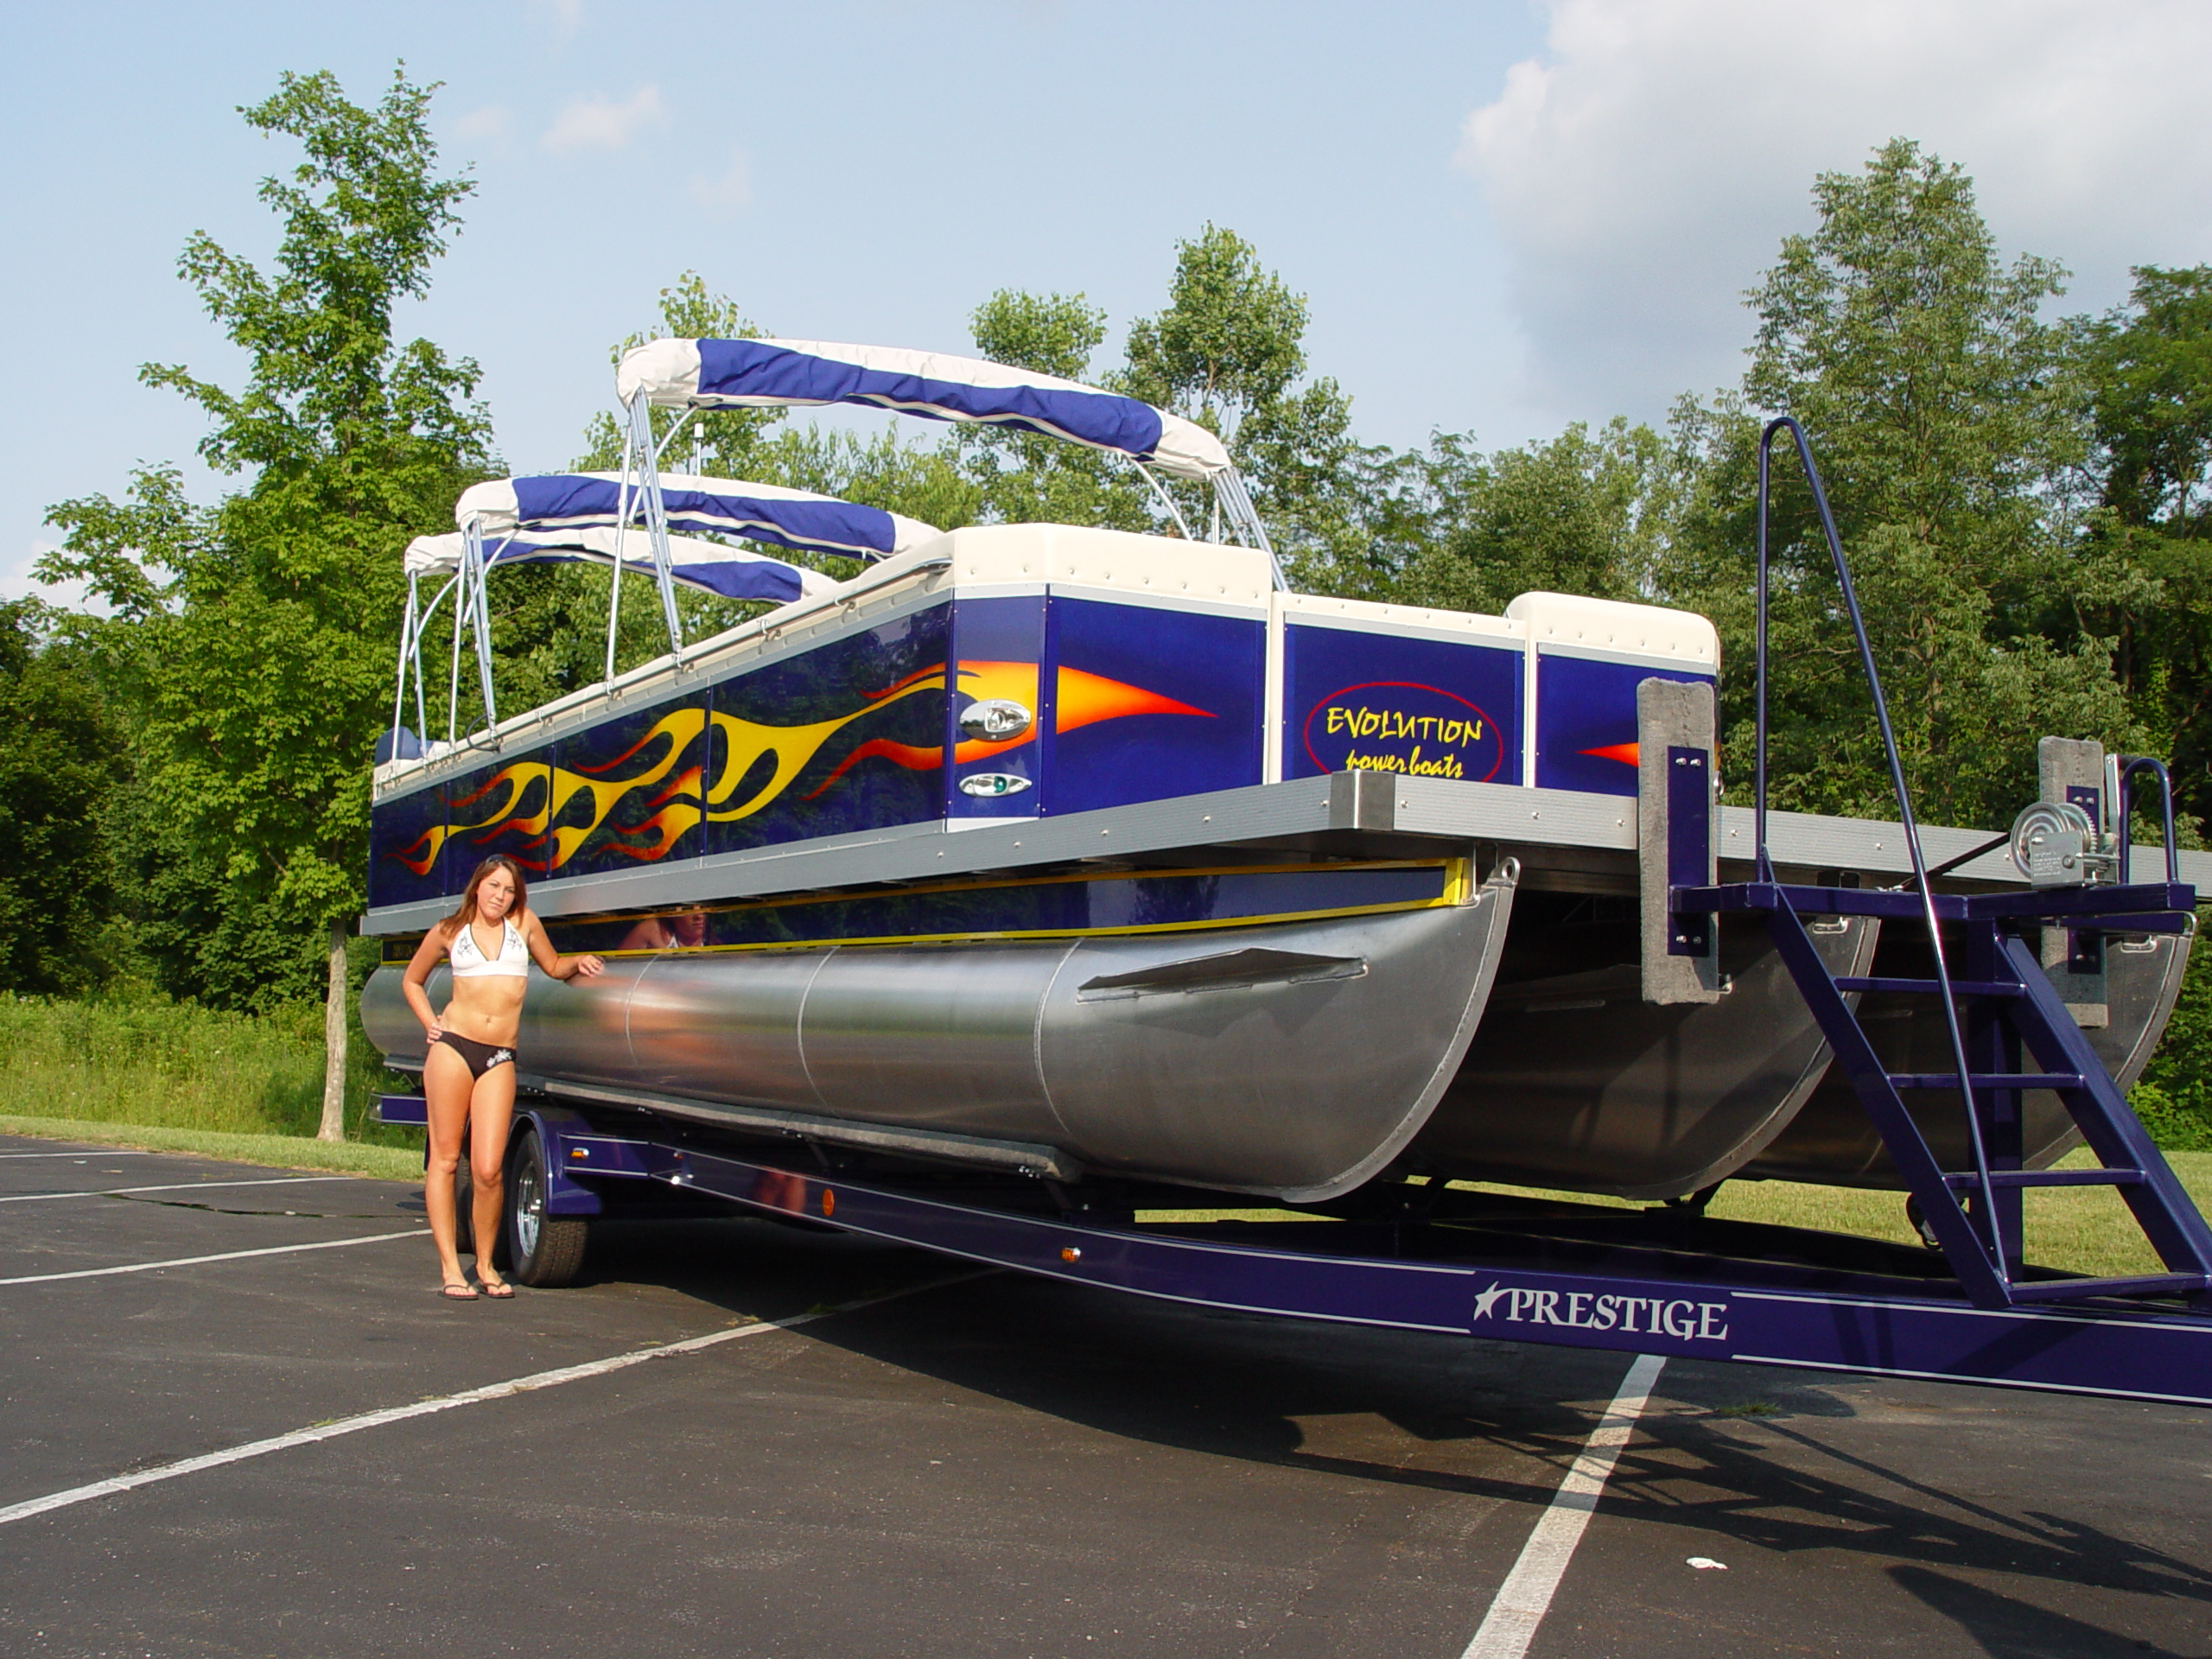 2007 Evolution Power Boat 34 34 Pontoon New Avidboater Com